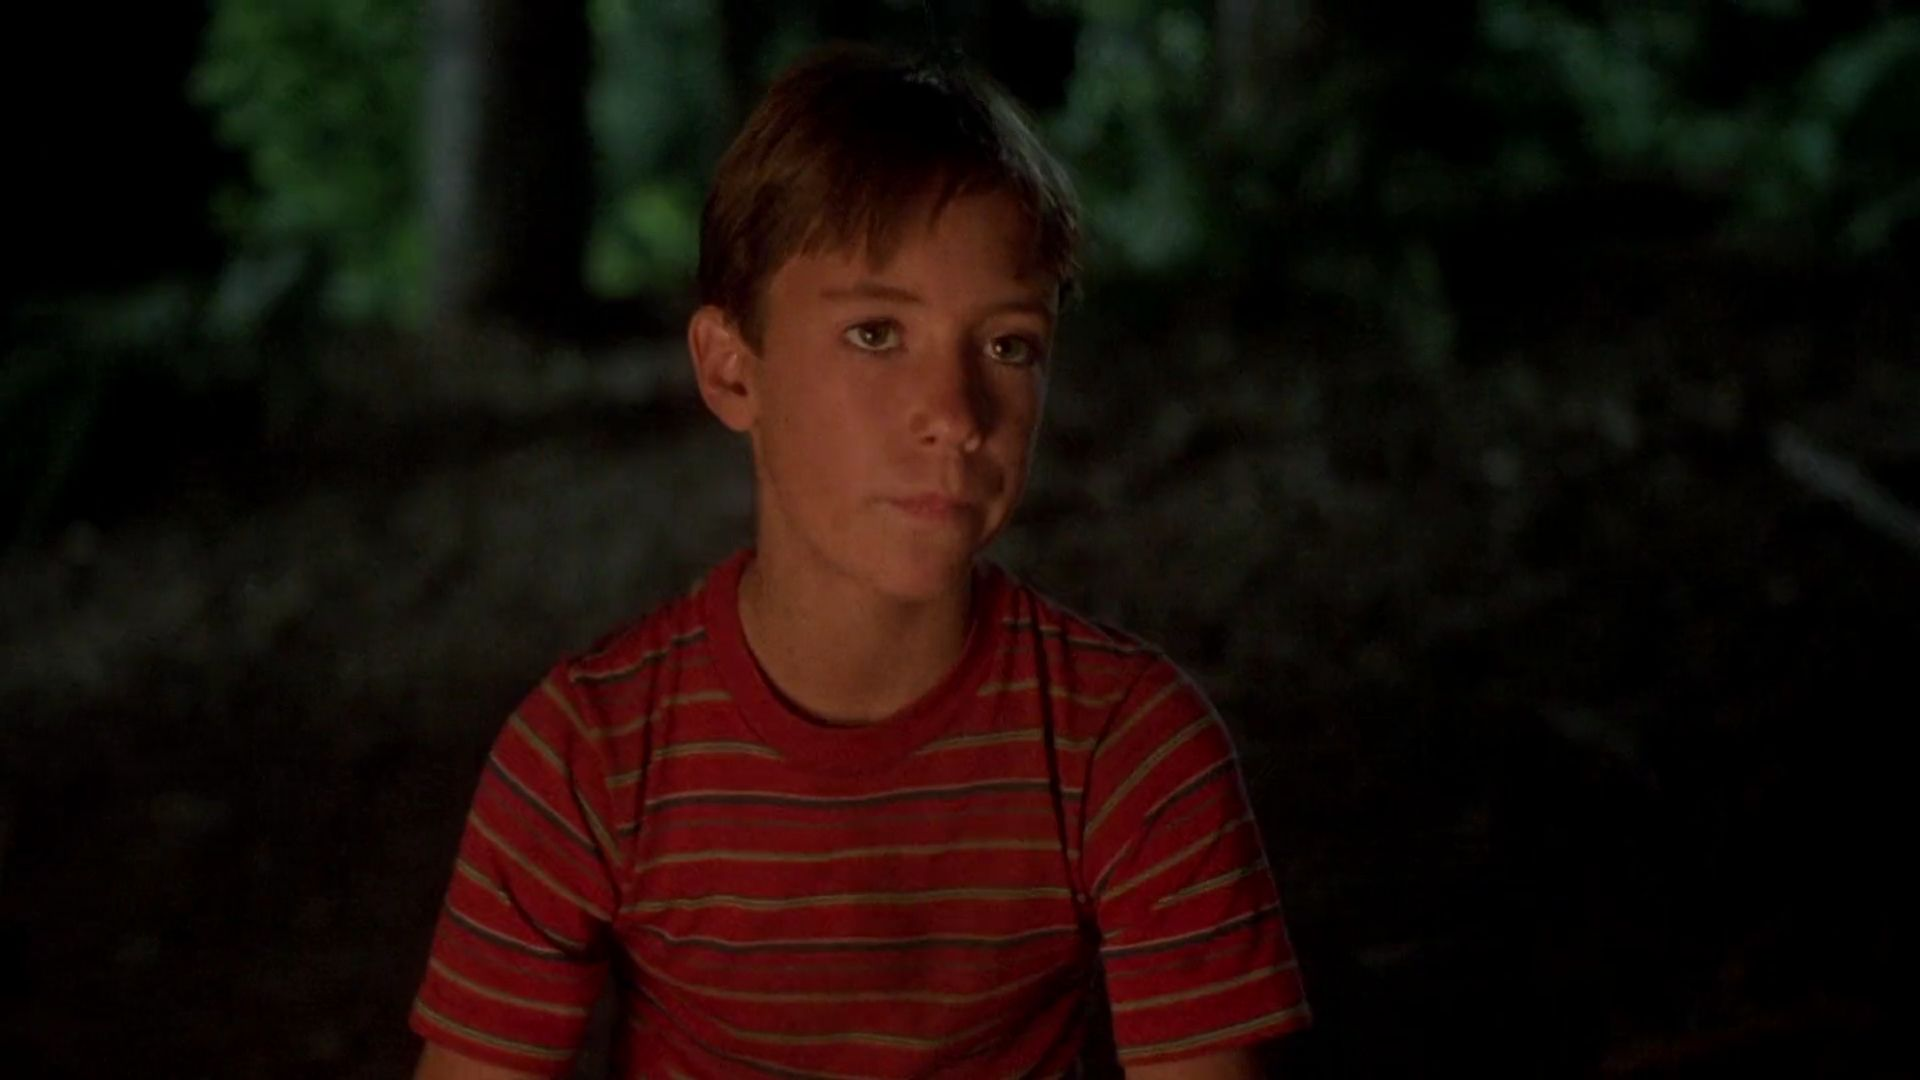 Wil Wheaton as Gordie in STAND BY ME ©︎ COLUMBIA PICTURES